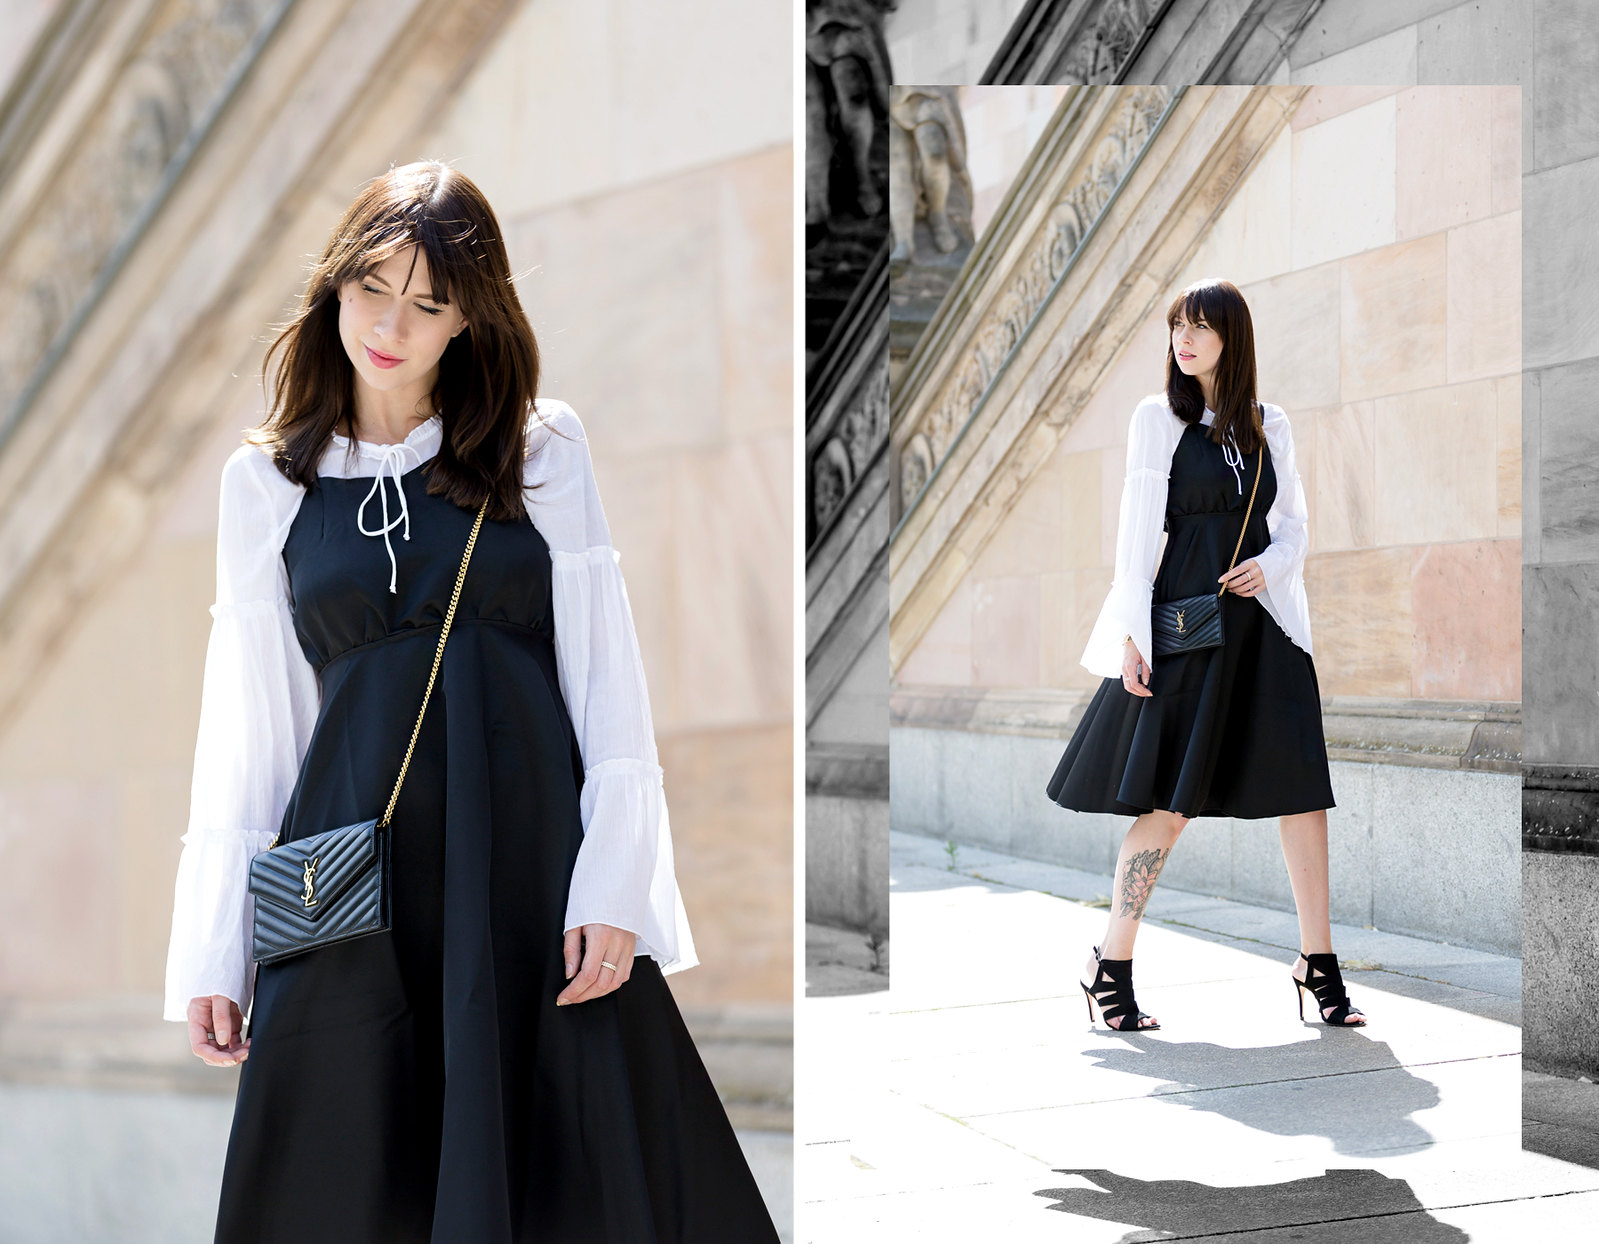 berlin museumsinsel black dress over white shirt chic ysl saint laurent mini bag pochette parisienne styling look blogger fashionblogger ootd lookbook black white rock stylish sexy parisienne cats & dogs fashionblogger ricarda schernus 5